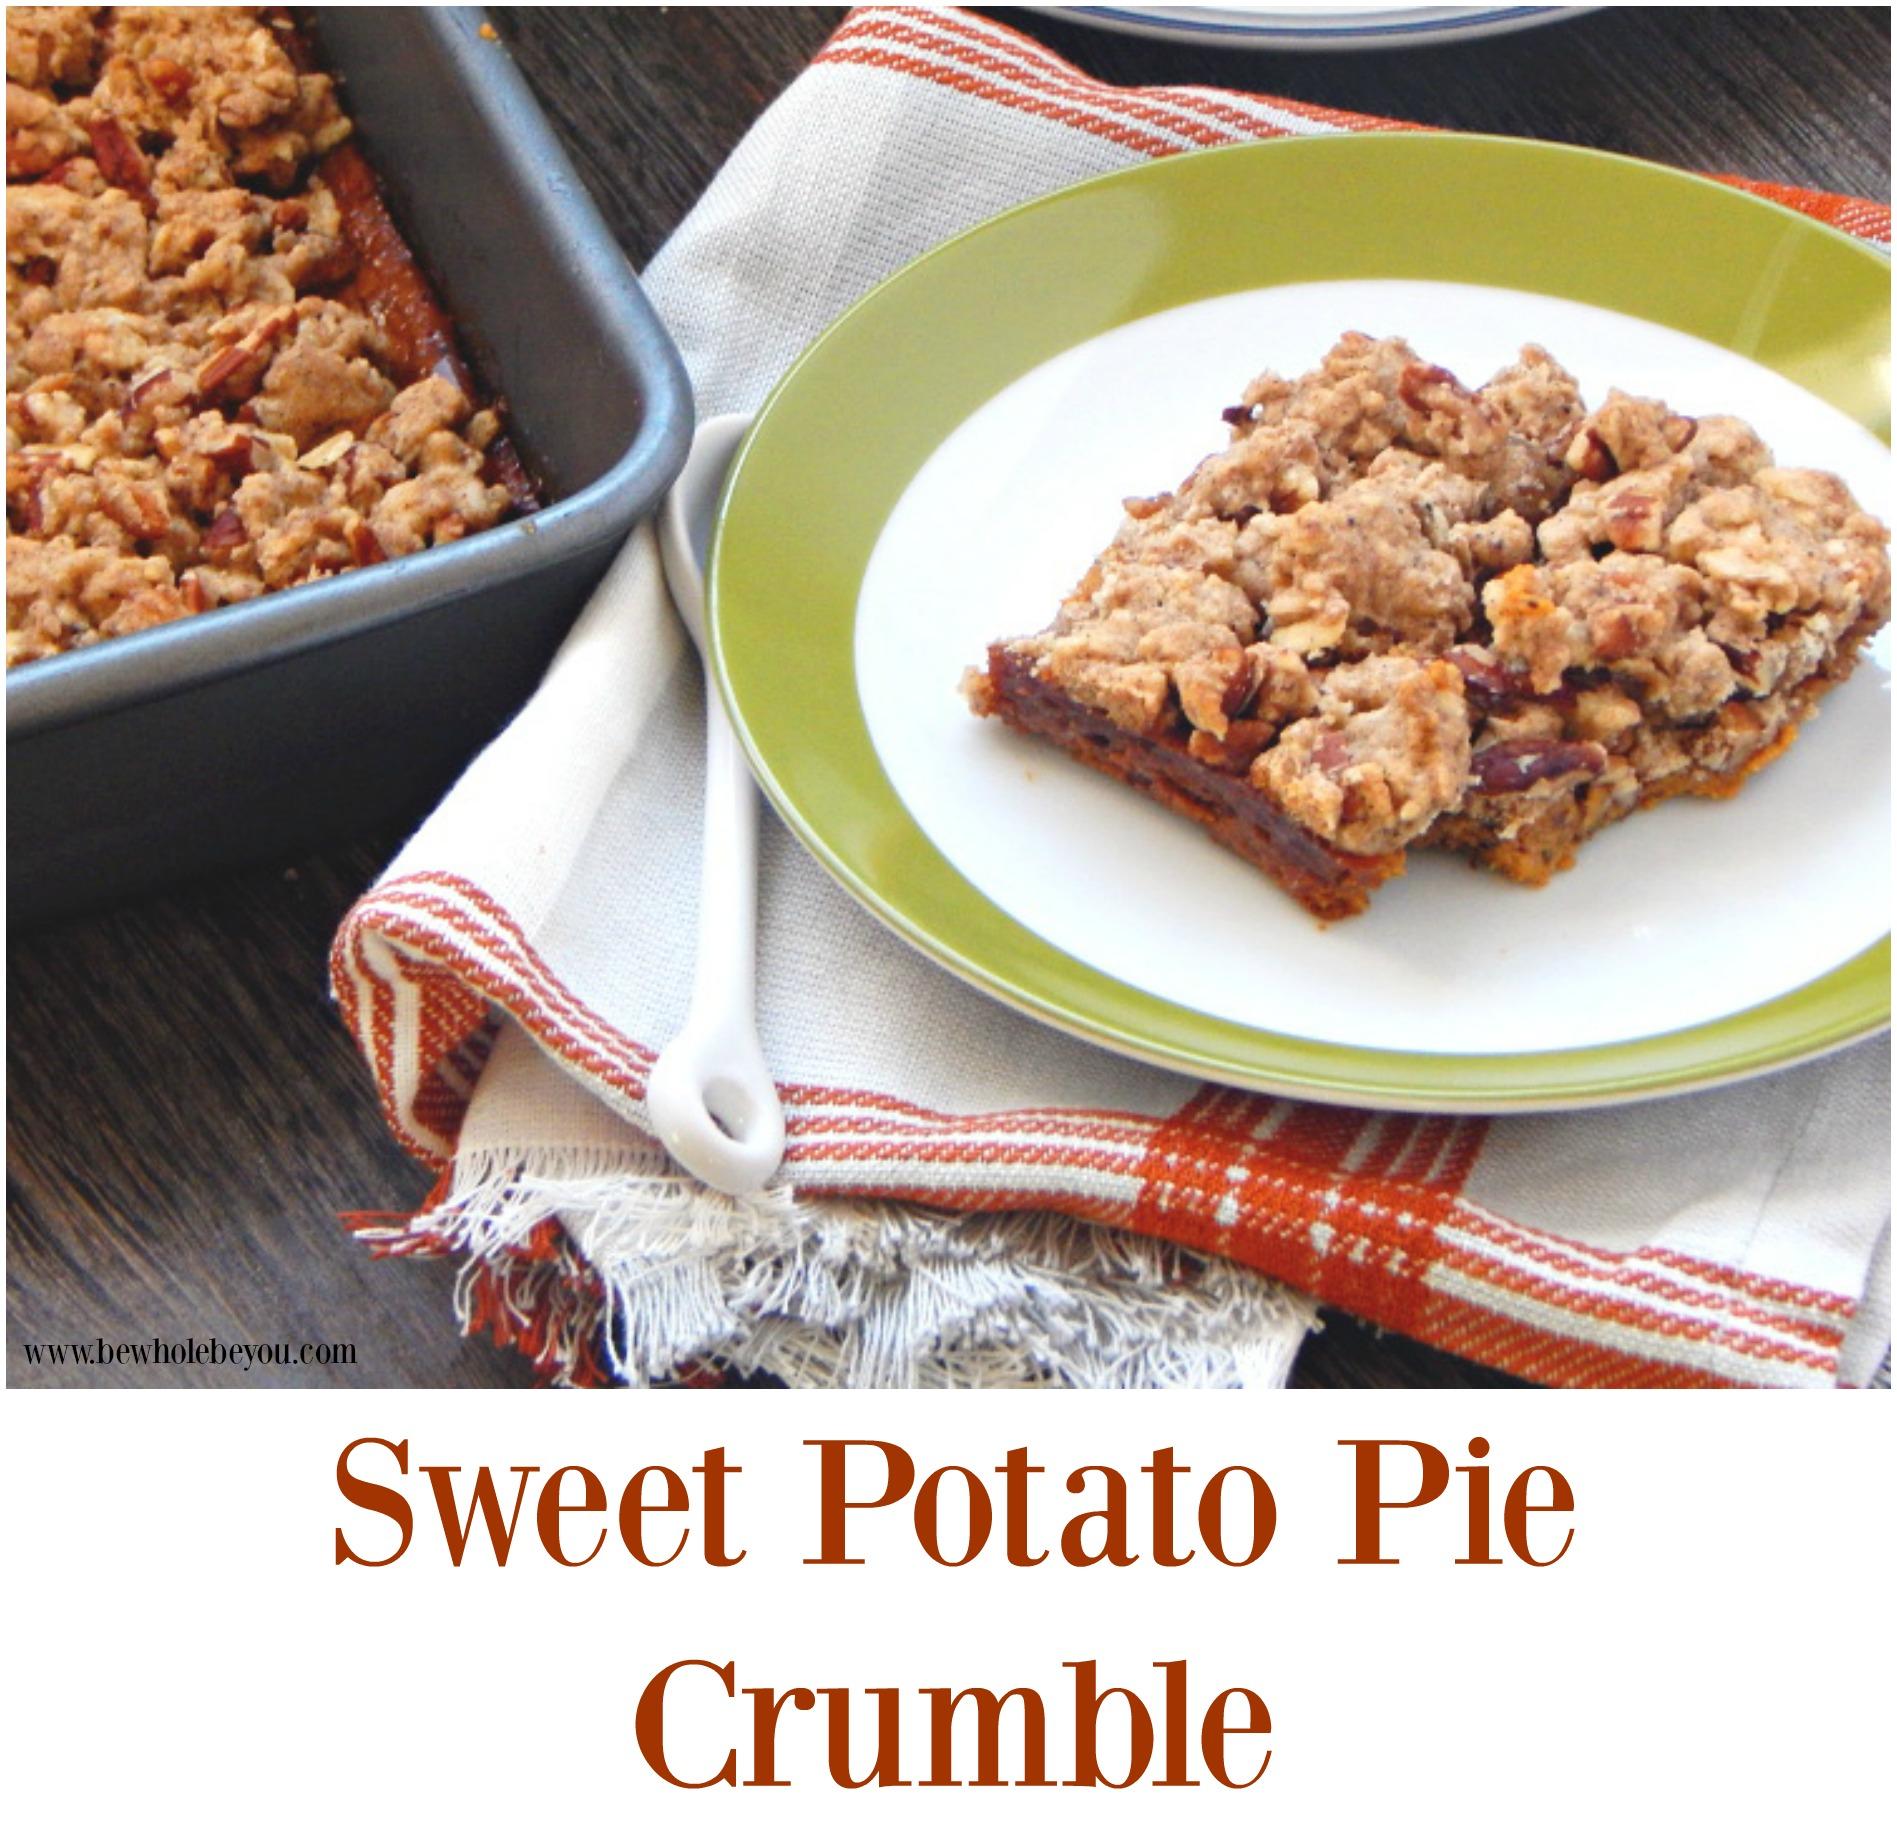 Sweet Potato Pie Crumble